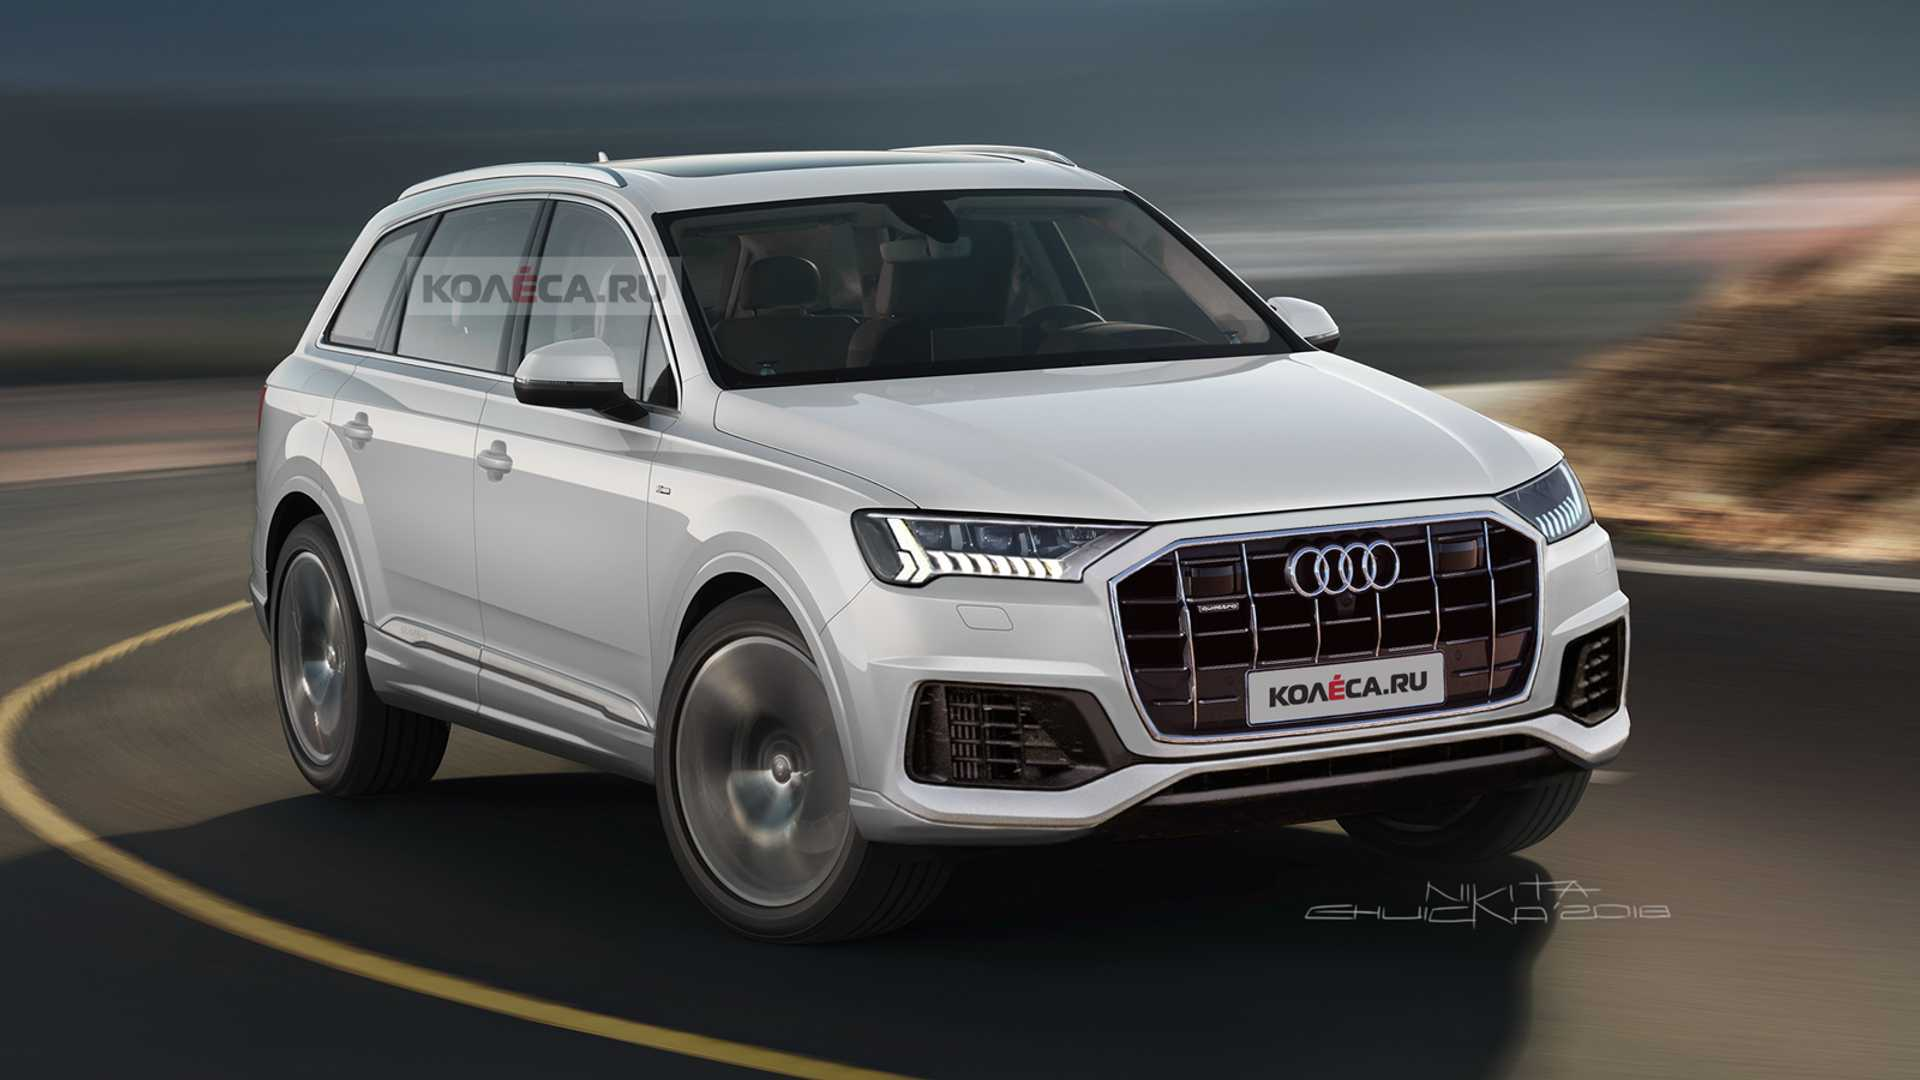 17 The Audi Q7 2020 Facelift Price And Release Date